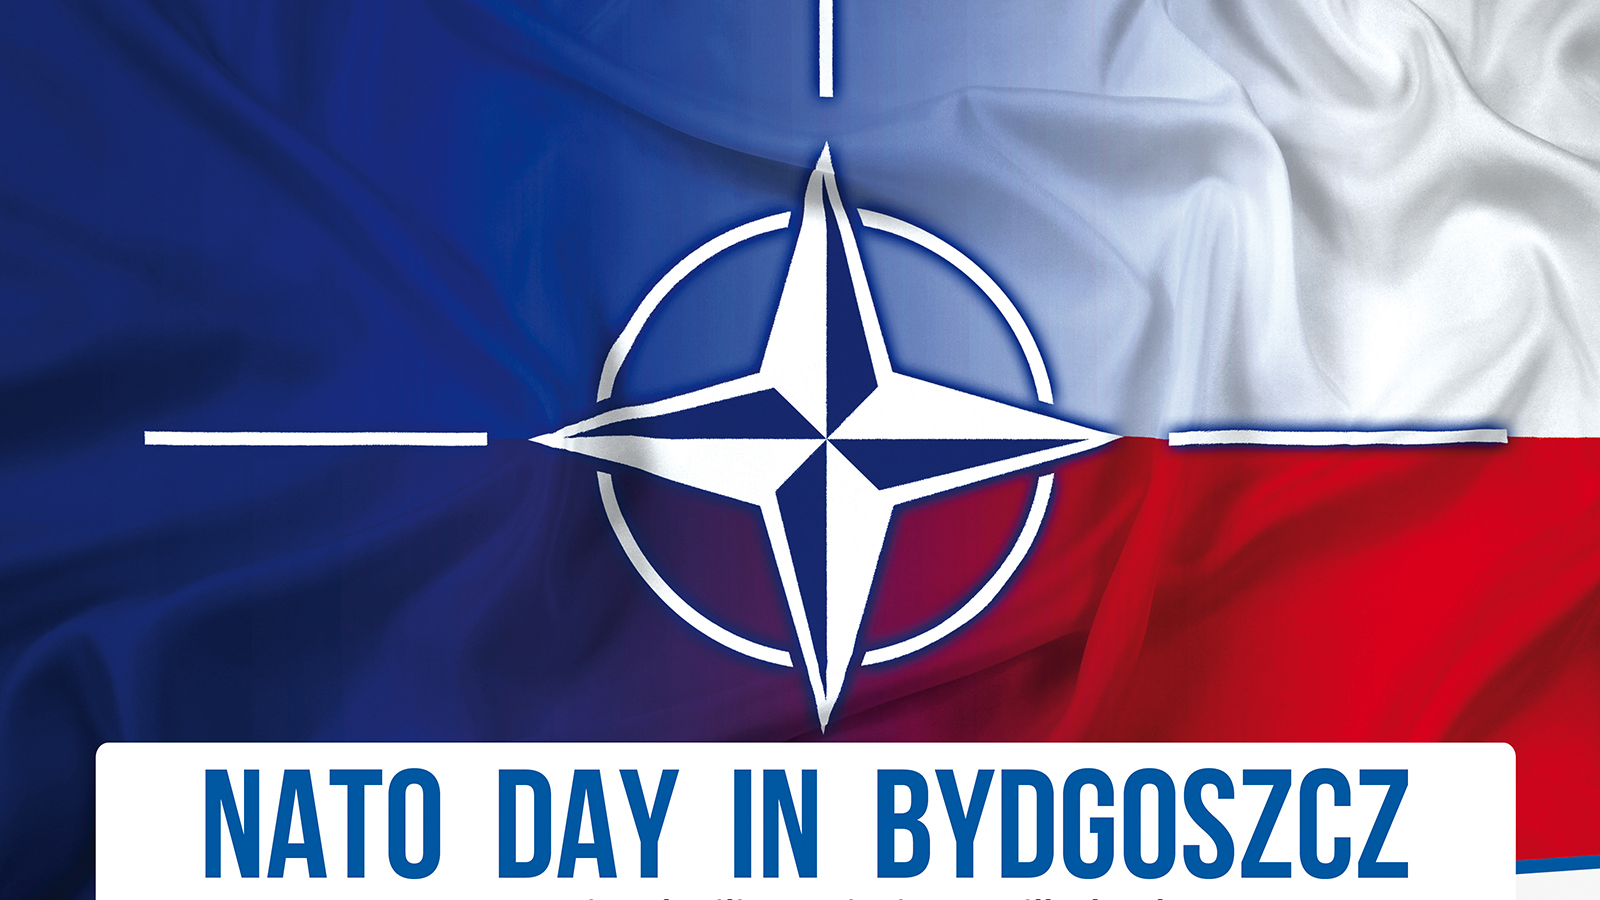 NATO Day in Bydgoszcz. Join us on 14 October!